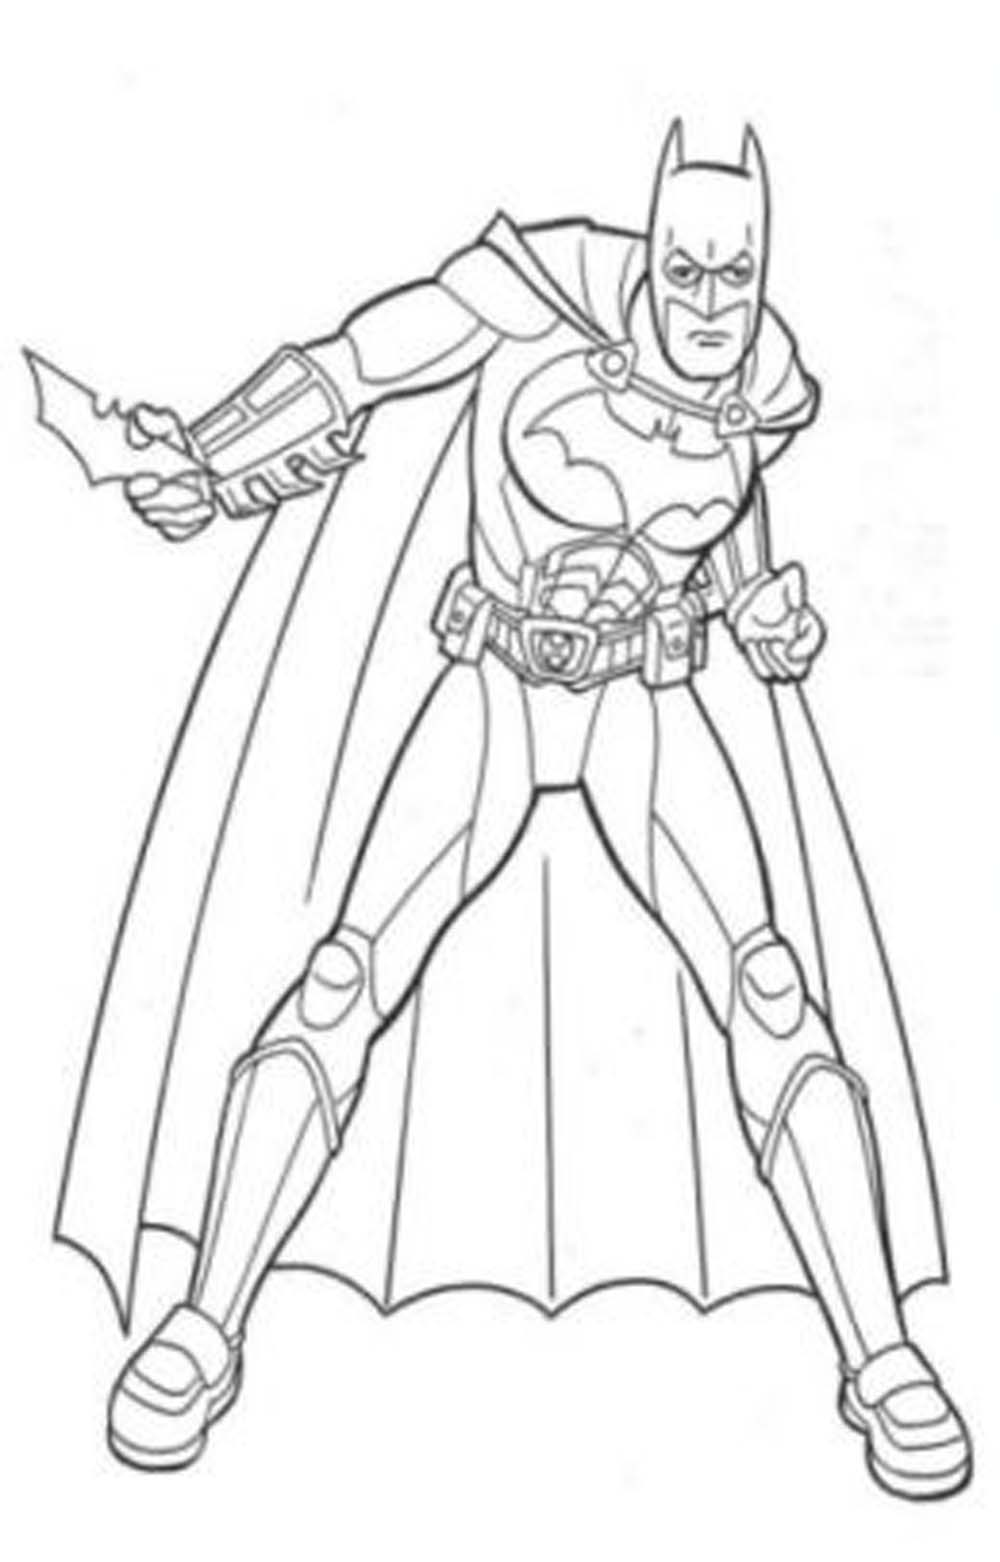 batman colouring sheet batman coloring page child coloring batman sheet colouring